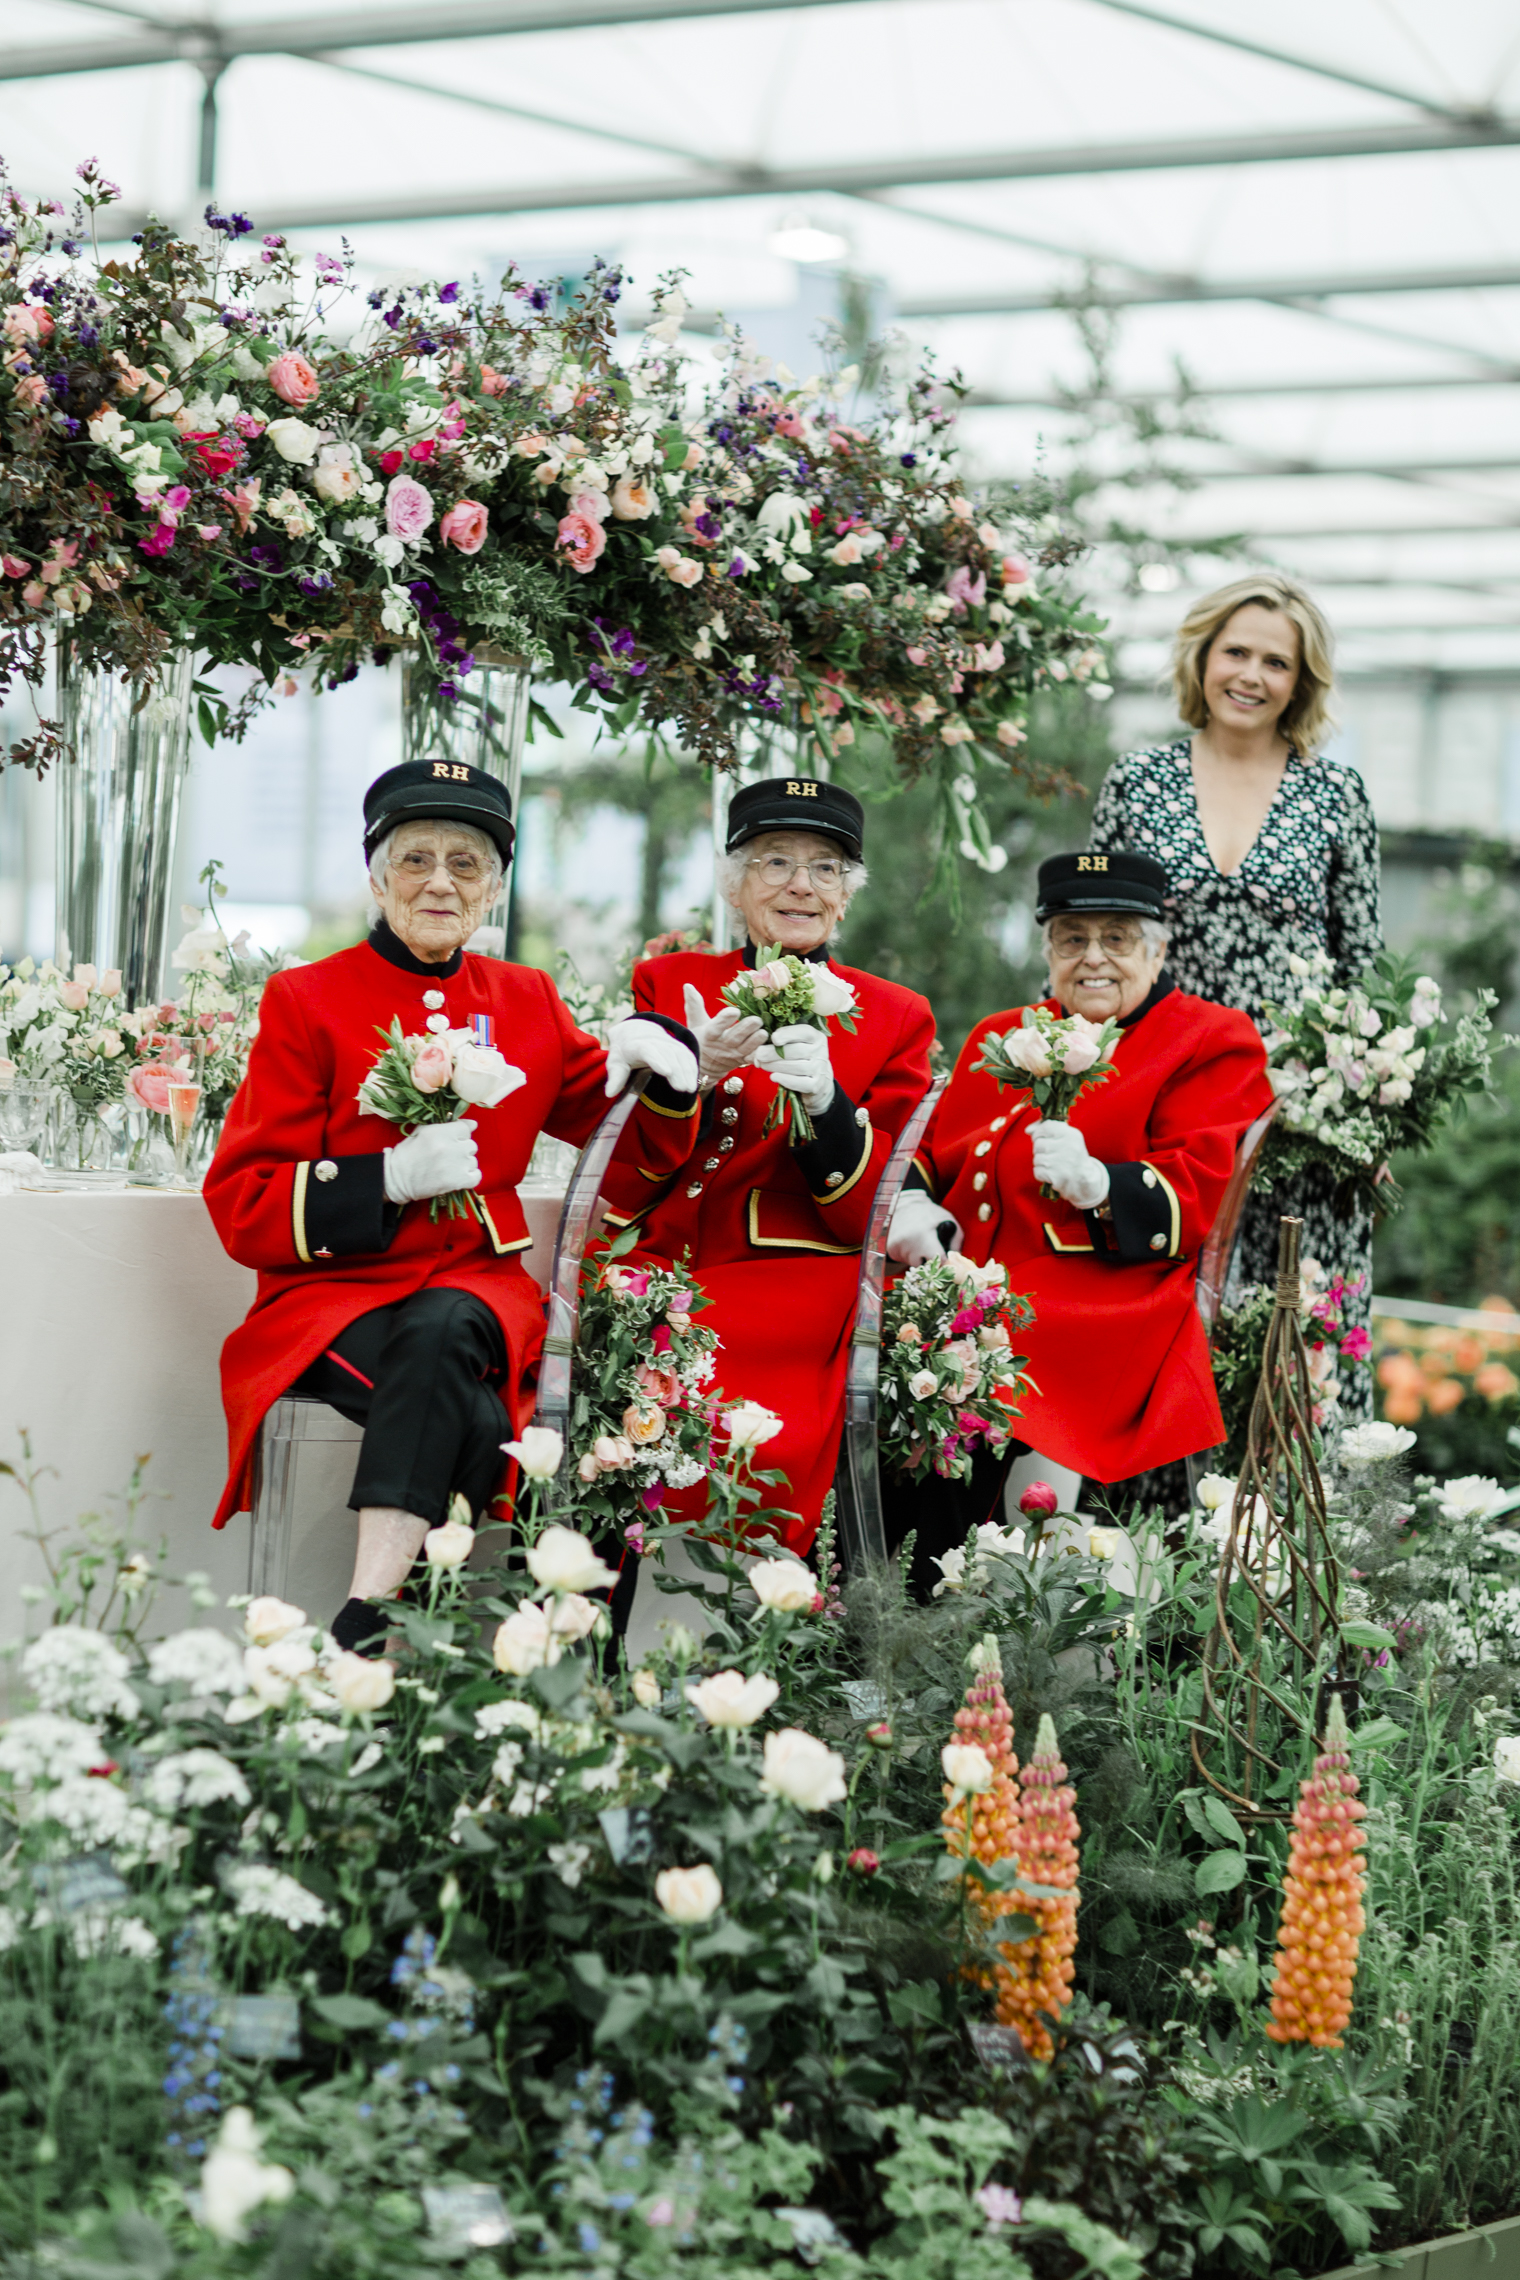 Liz Earle Rosie Morton with lady Chelsea Pensioners at the RHS Chelsea Flower Show 2019